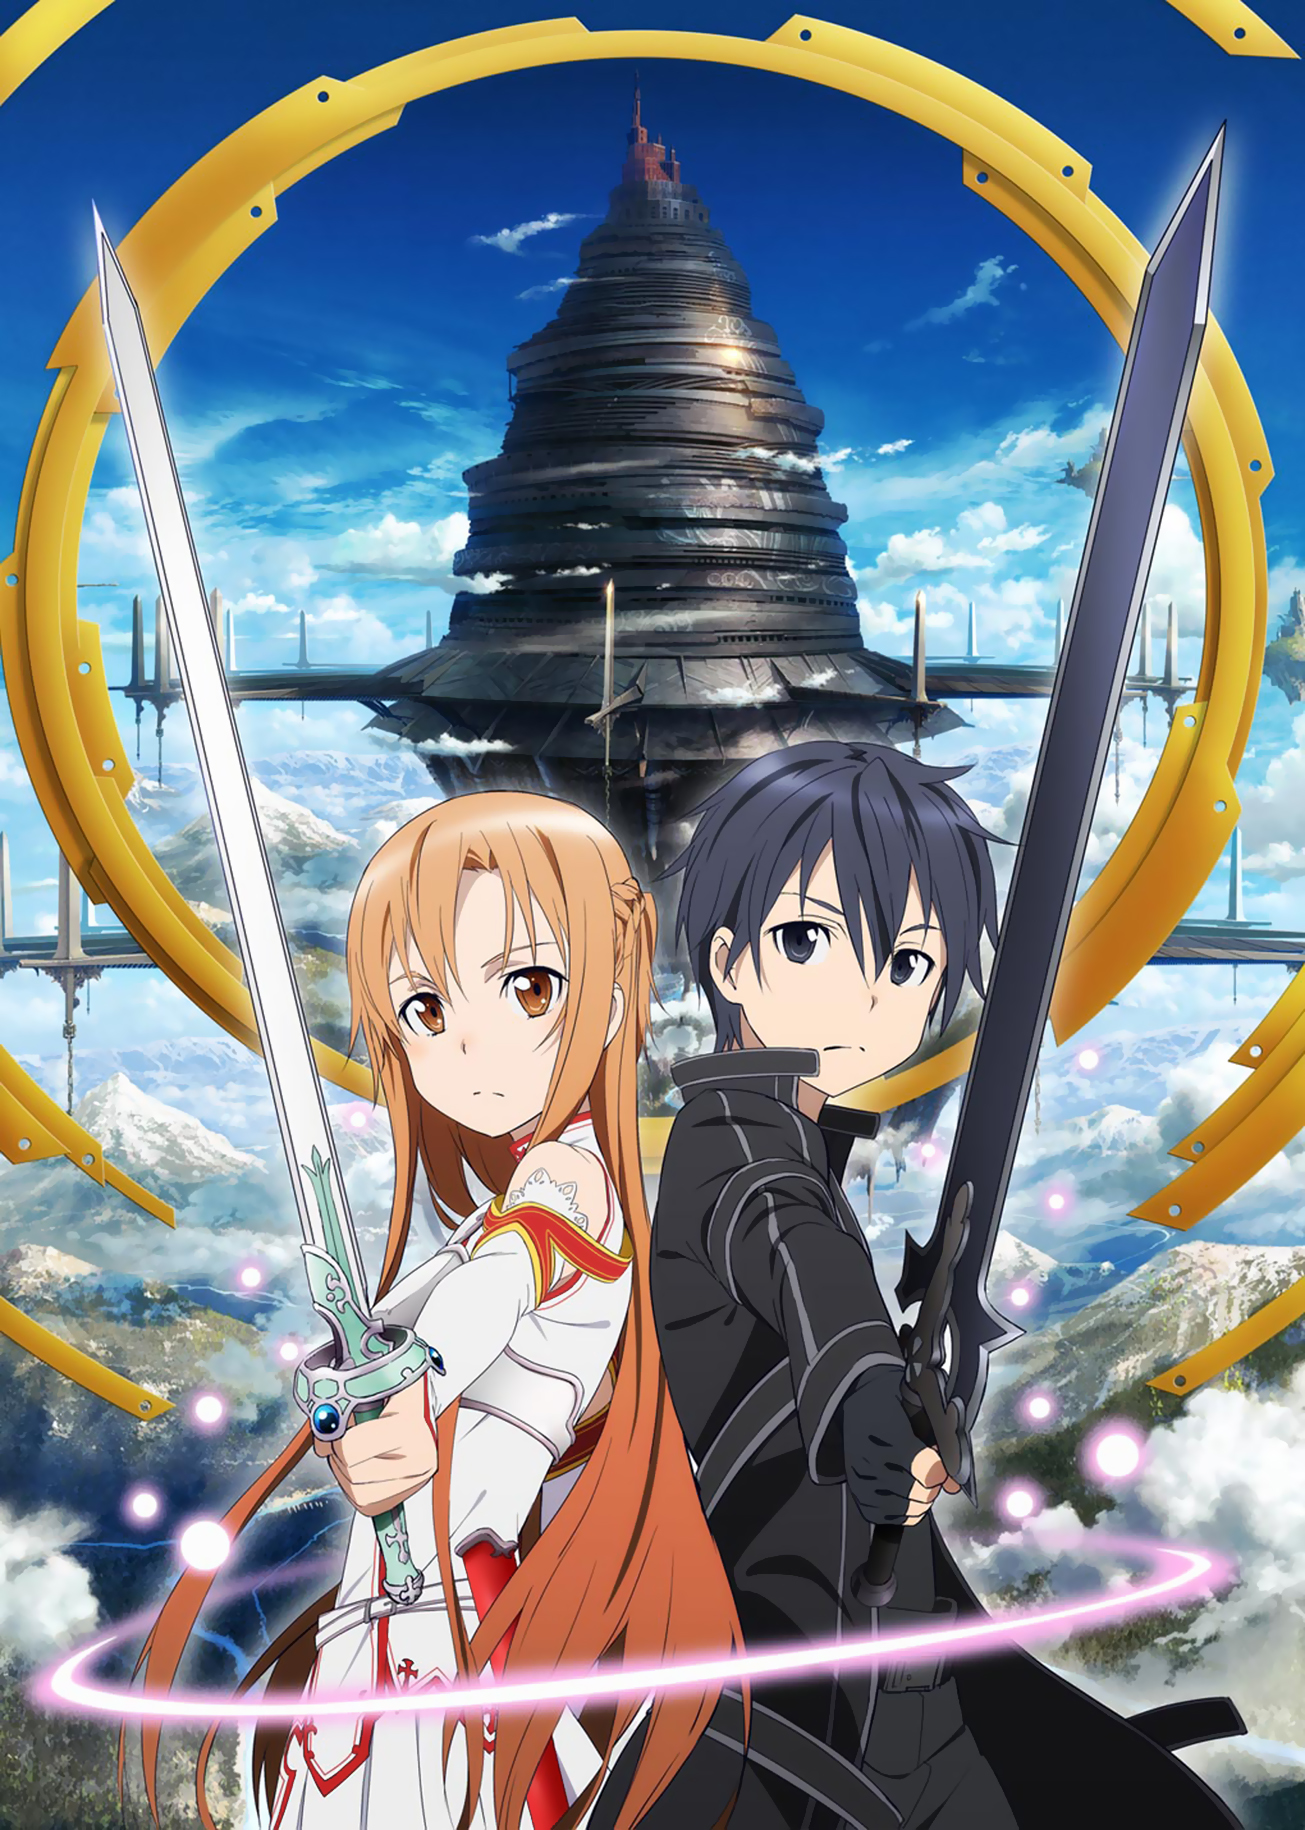 Sword Art Online Mobile Wallpaper Zerochan Anime Image Board